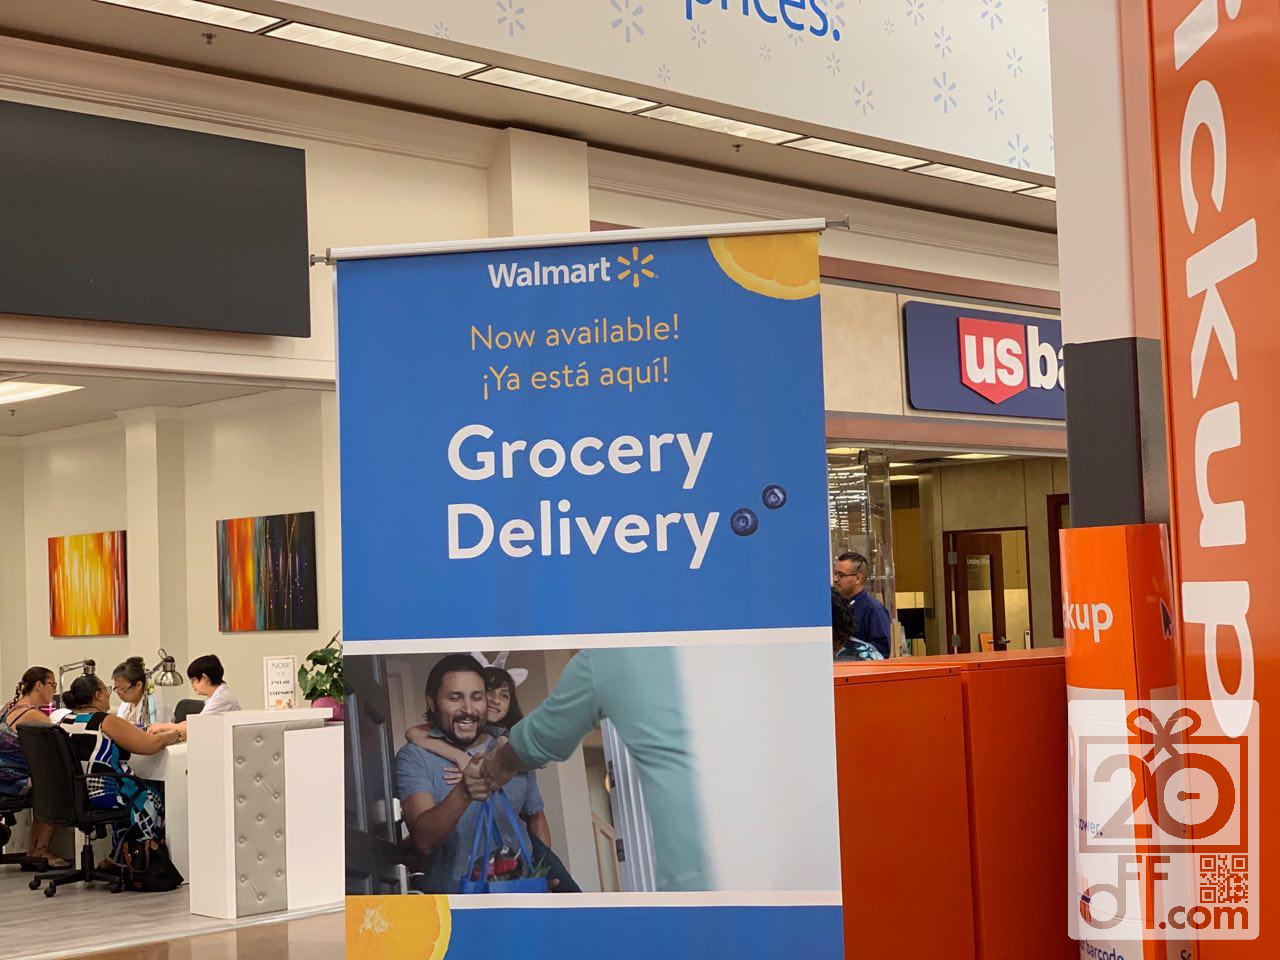 Walmart Store Grocery Delivery